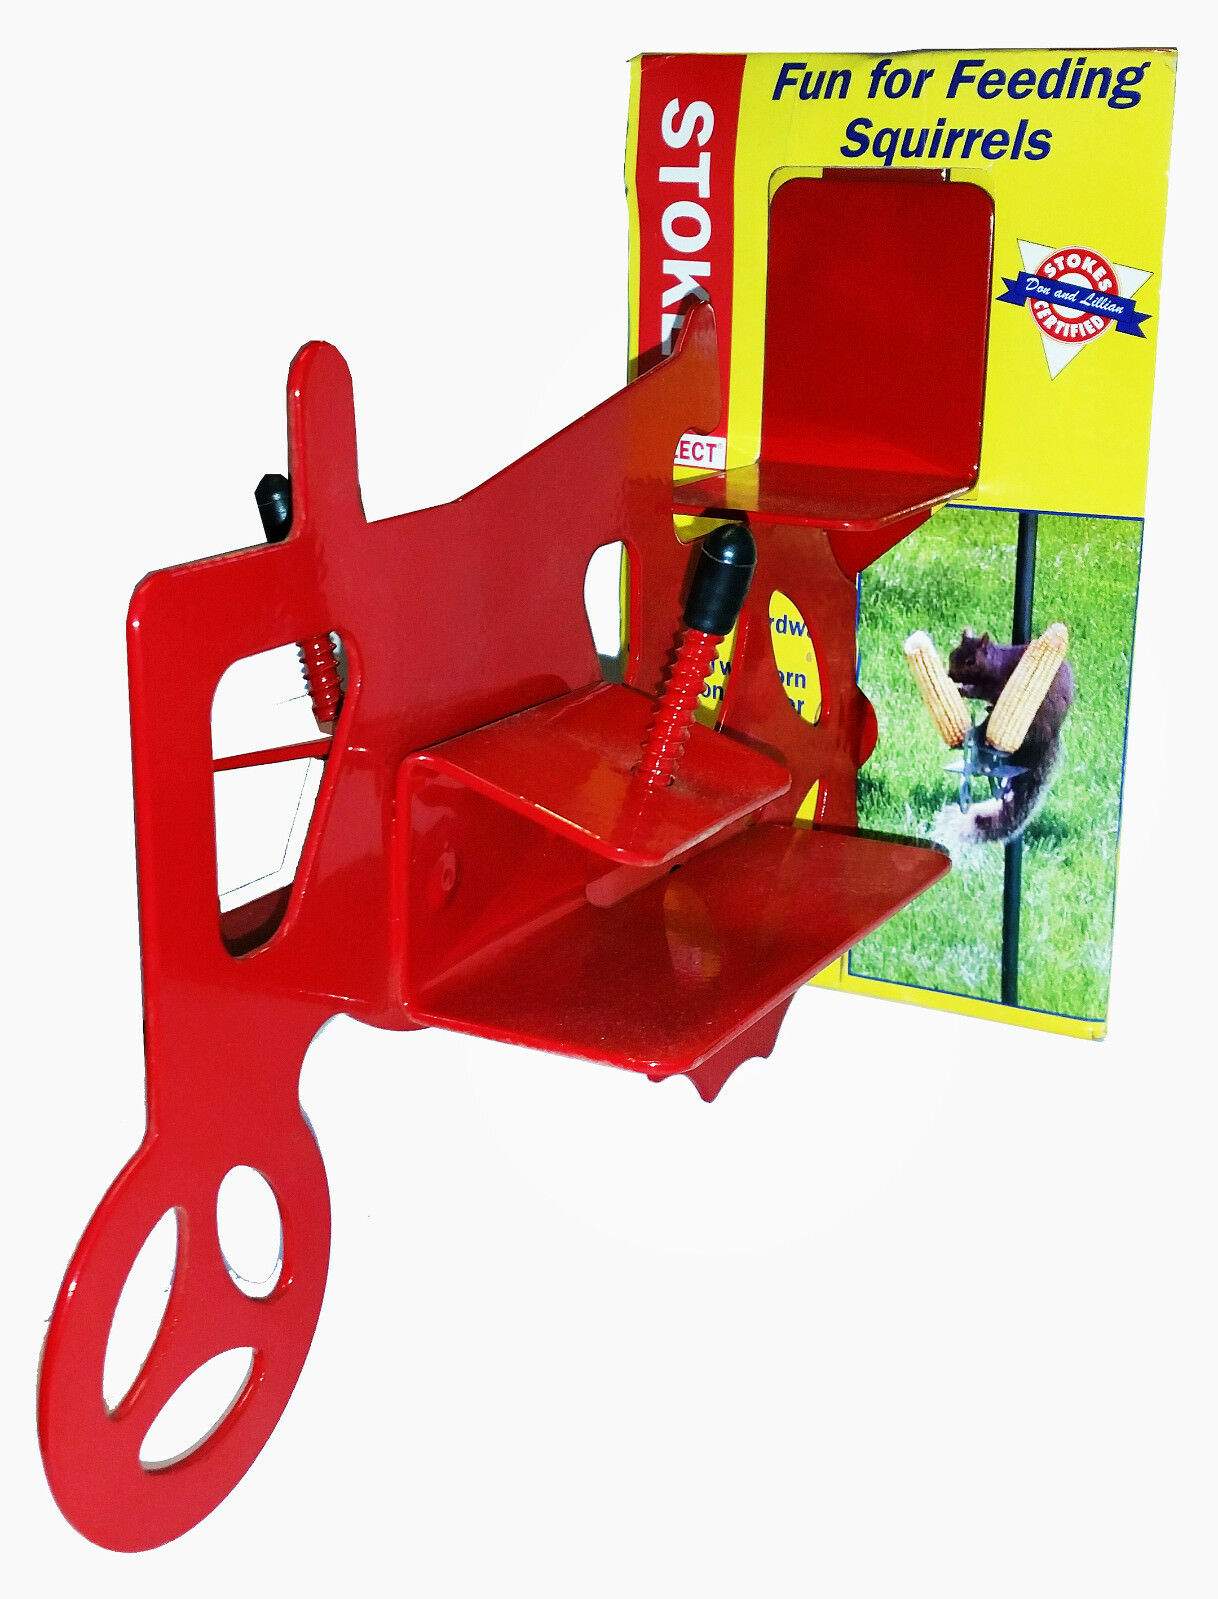 STOKES SELECT - Metal Squirrel Feeder Tractor